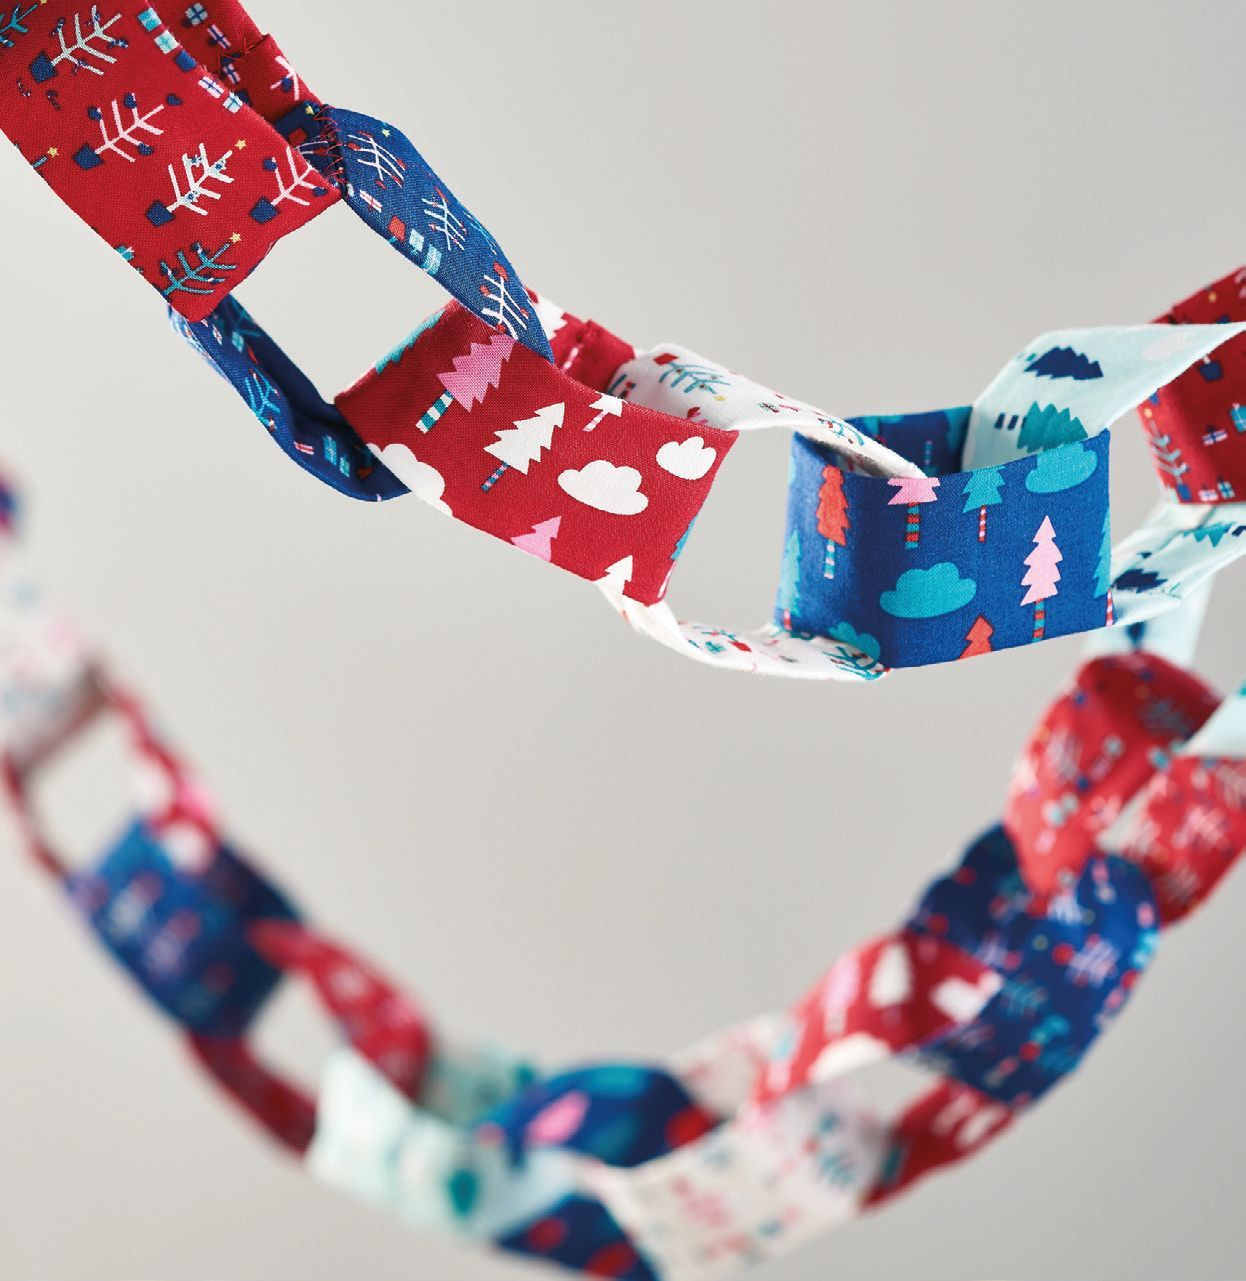 Festive Fabric Chains - Free sewing patterns - Sew